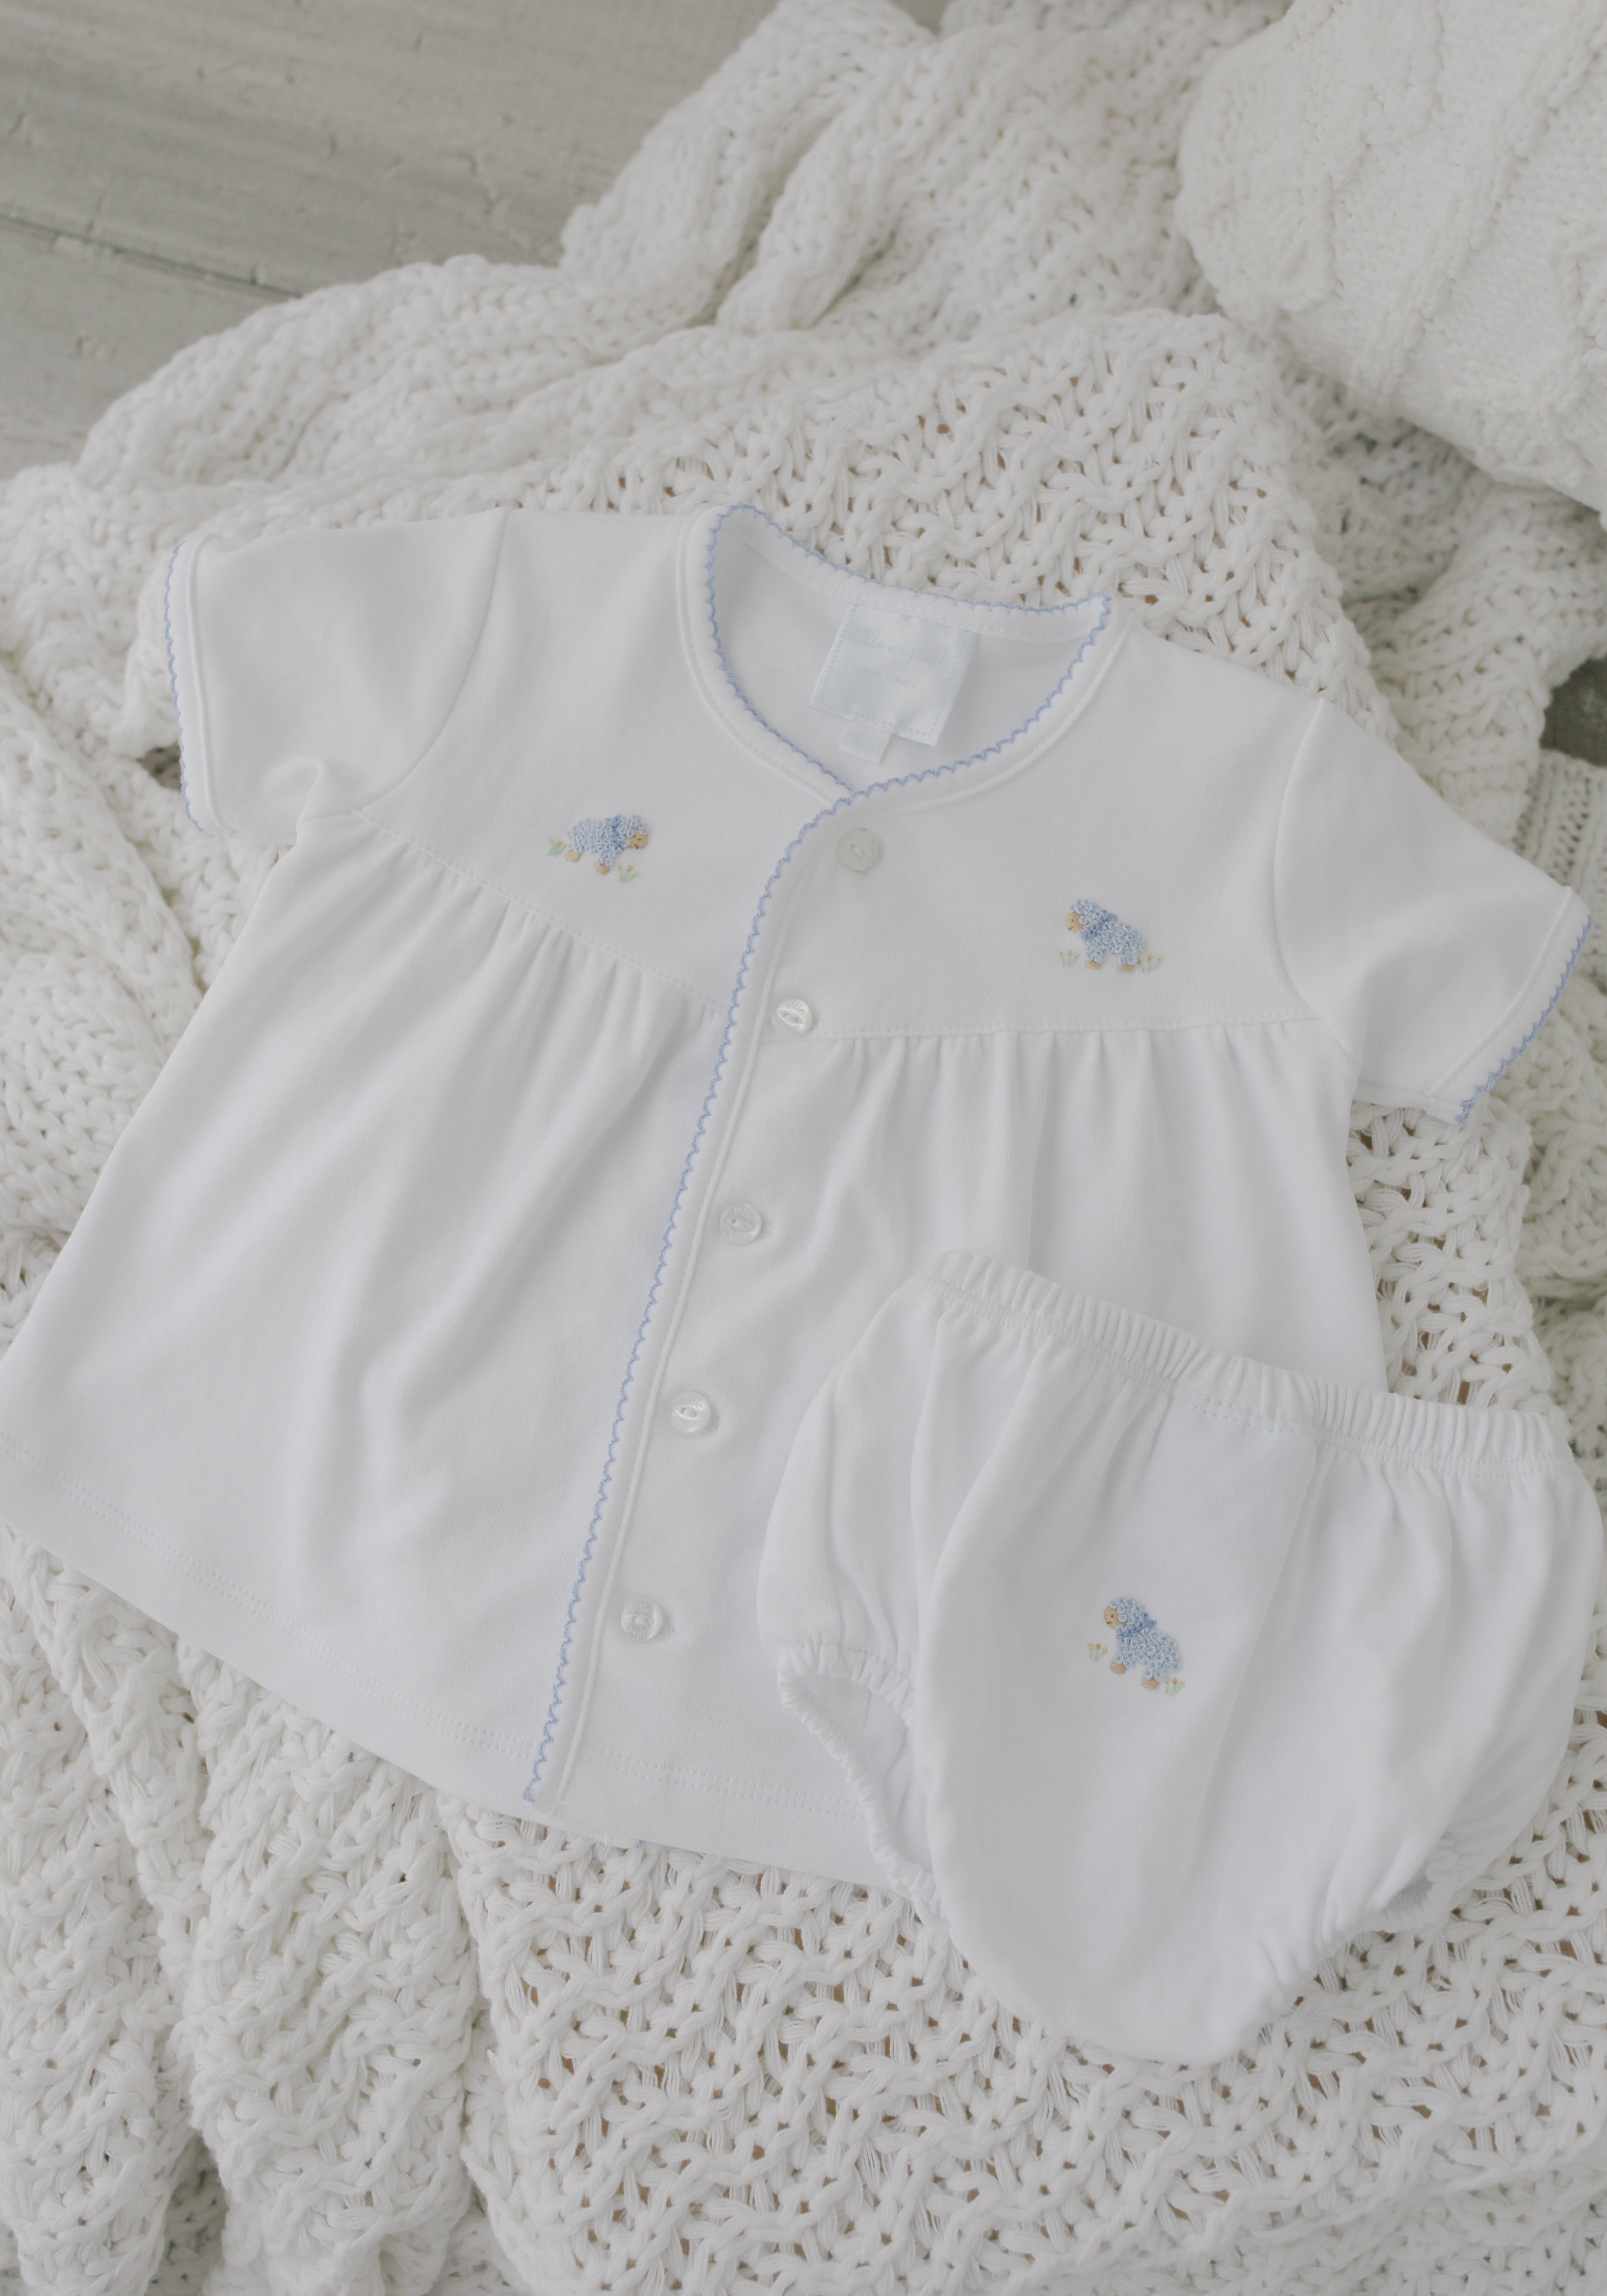 d31c30b95 Indulge your little one in 100% Peruvian Pima Cotton with tiny french knot  details and picot trim. These new layette sets will melt your heart. Sweet  ...